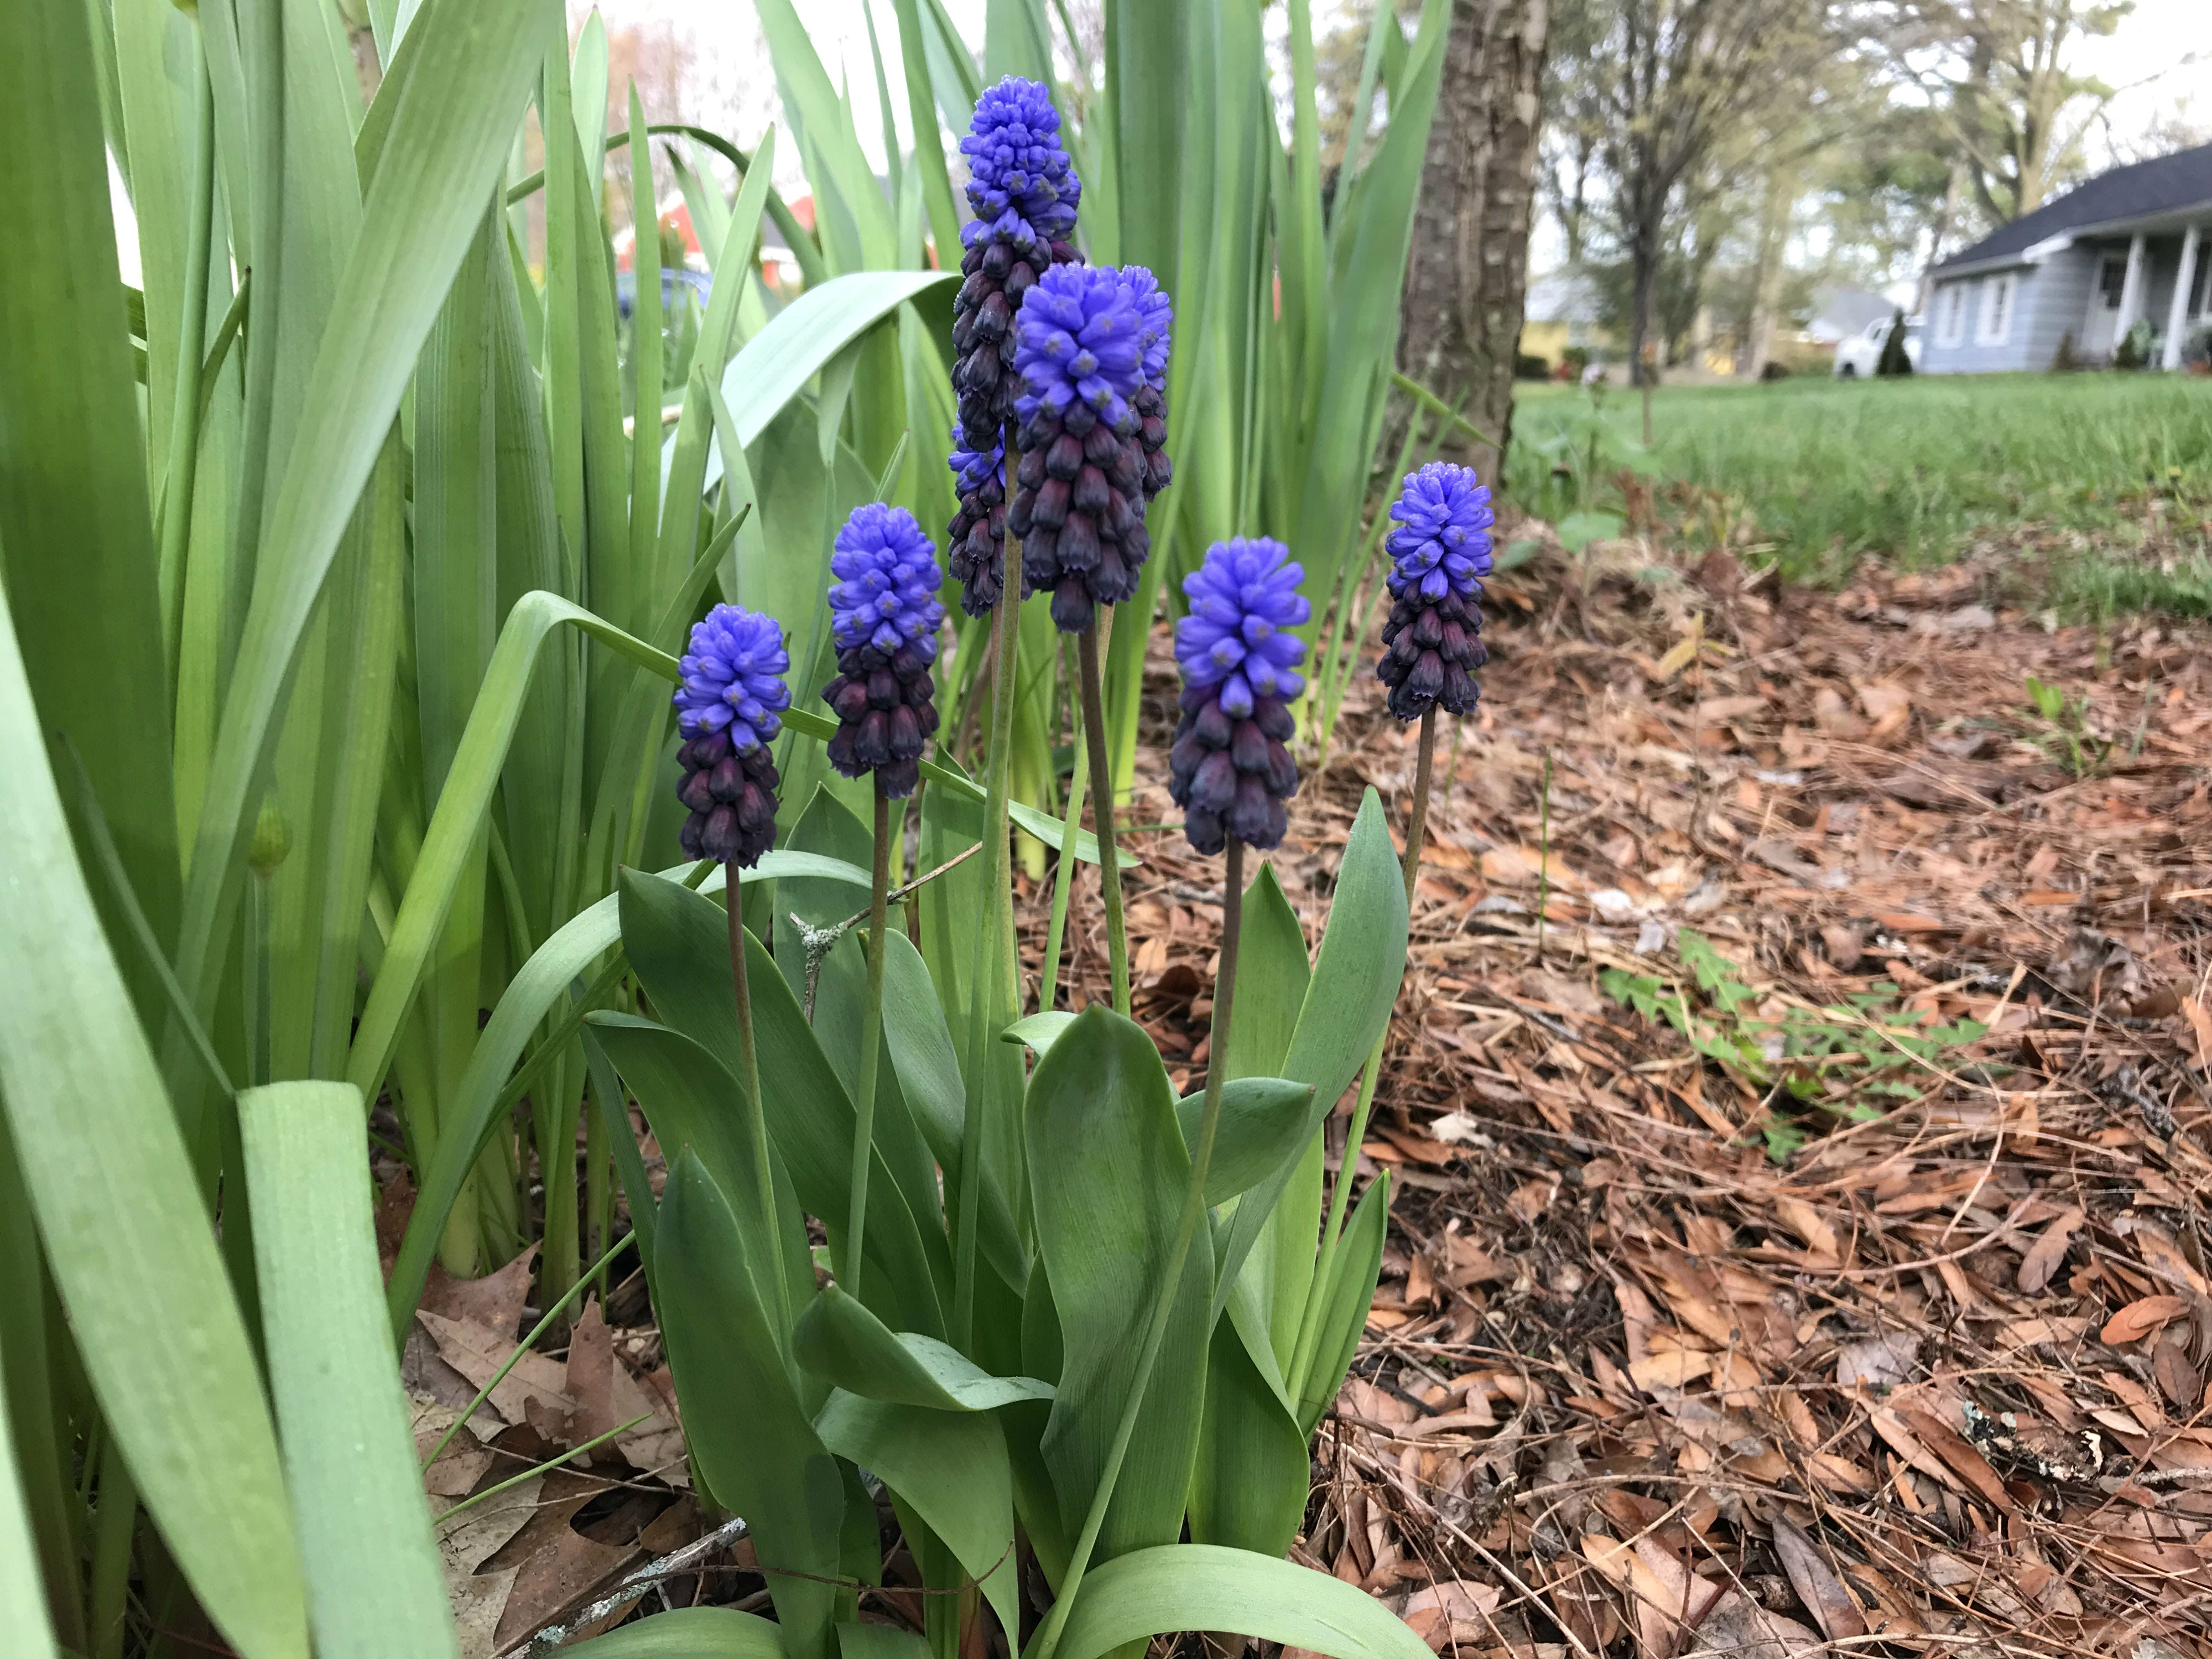 Grape hyacinth in bloom in South Burlington on Sunday, May  5, 2019.